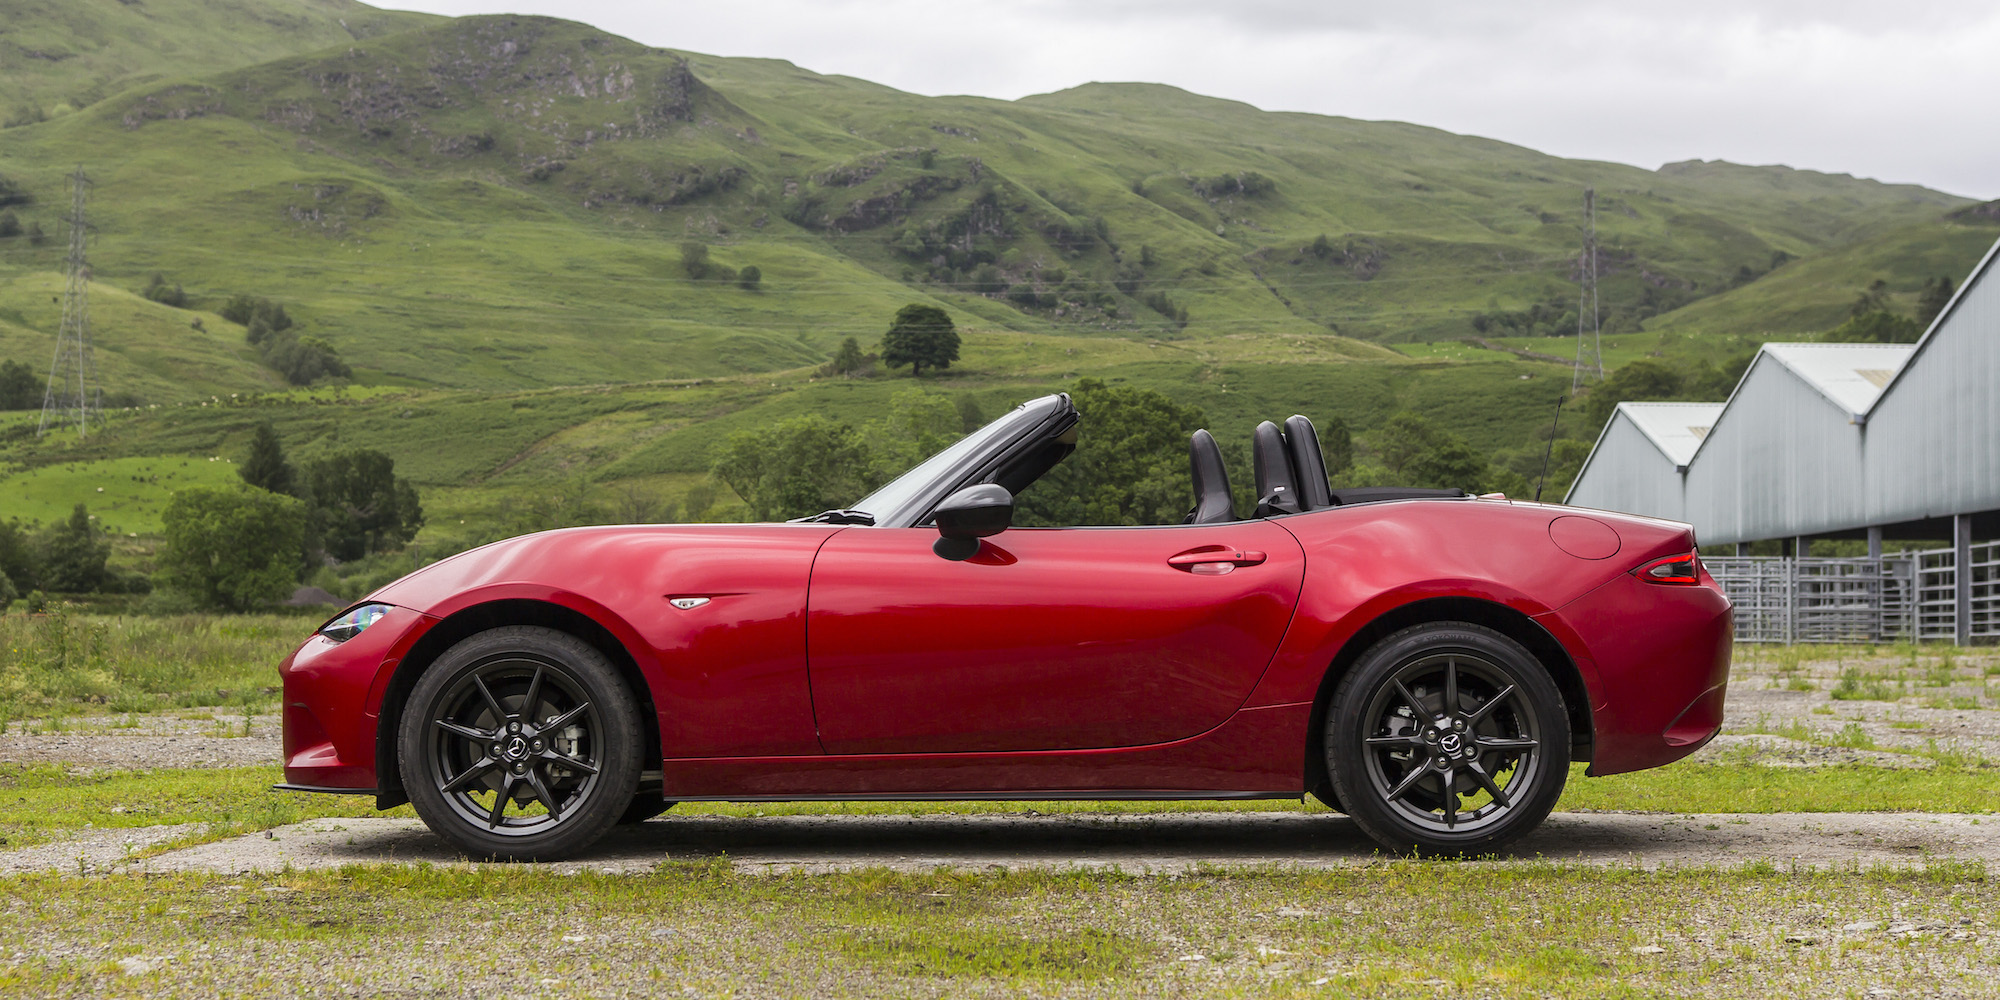 2016 Mazda Mx 5 Side Exterior (View 8 of 31)